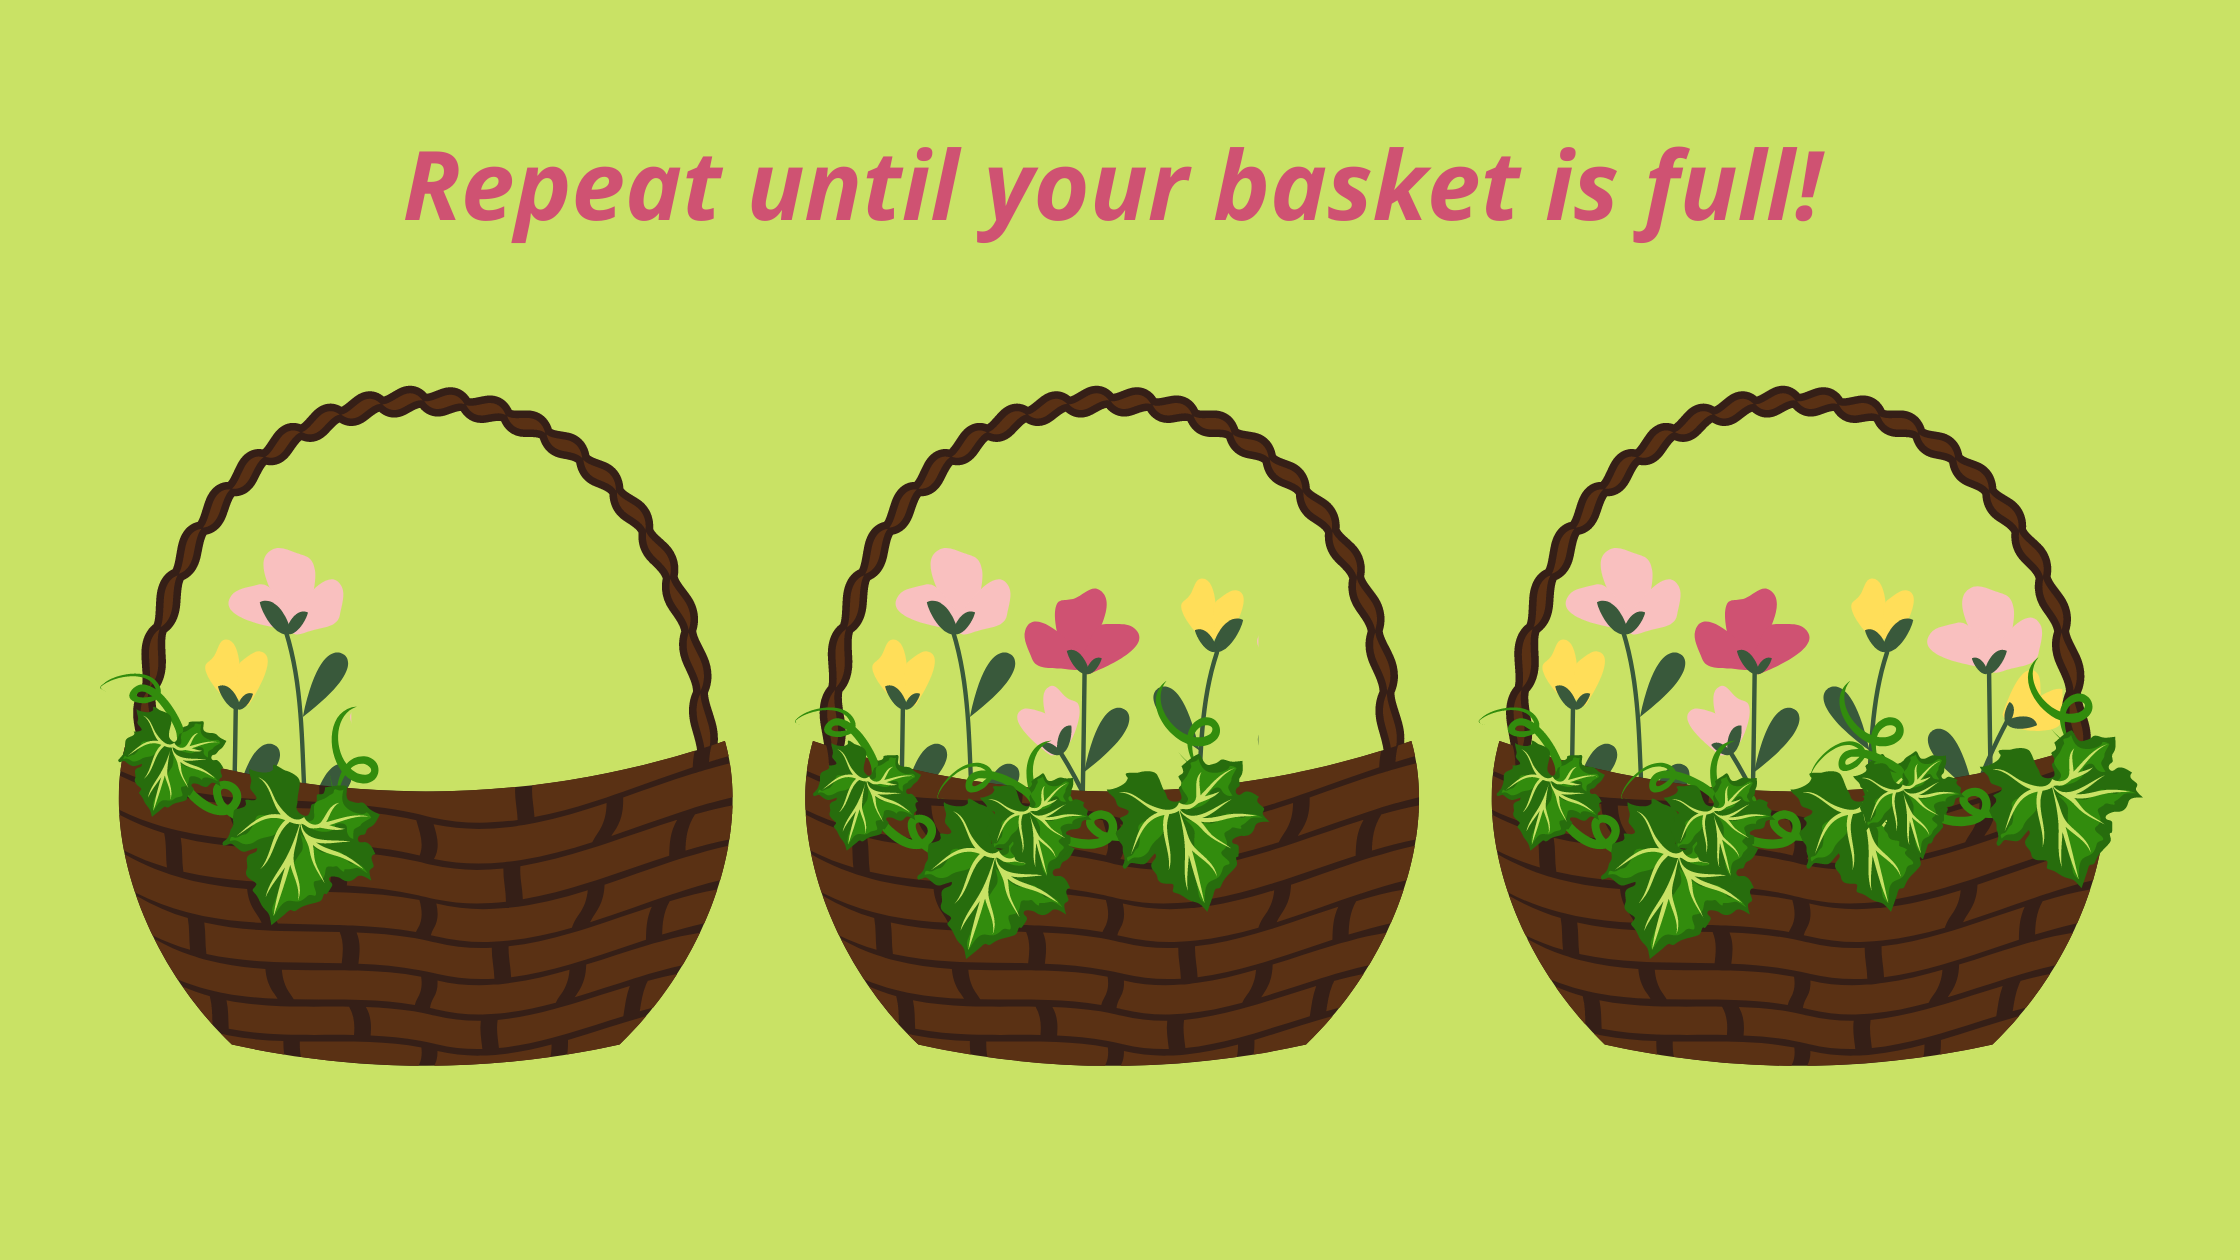 Repeat until your basket is full!